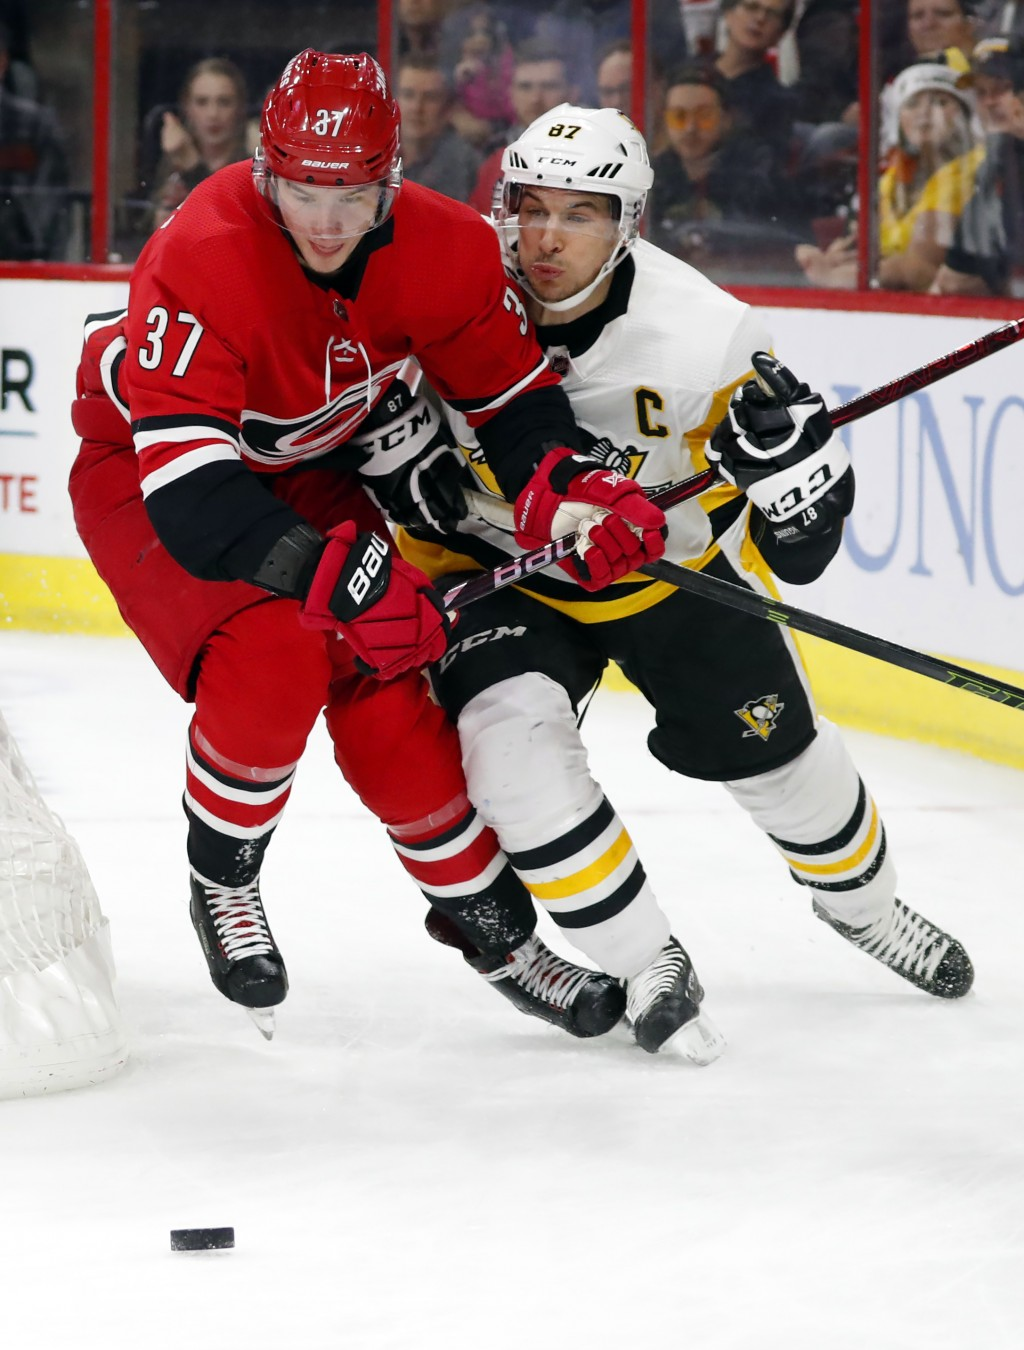 Carolina Hurricanes' Andrei Svechnikov (37) battles with Pittsburgh Penguins' Sidney Crosby (87) behind the net during the first period of an NHL hock